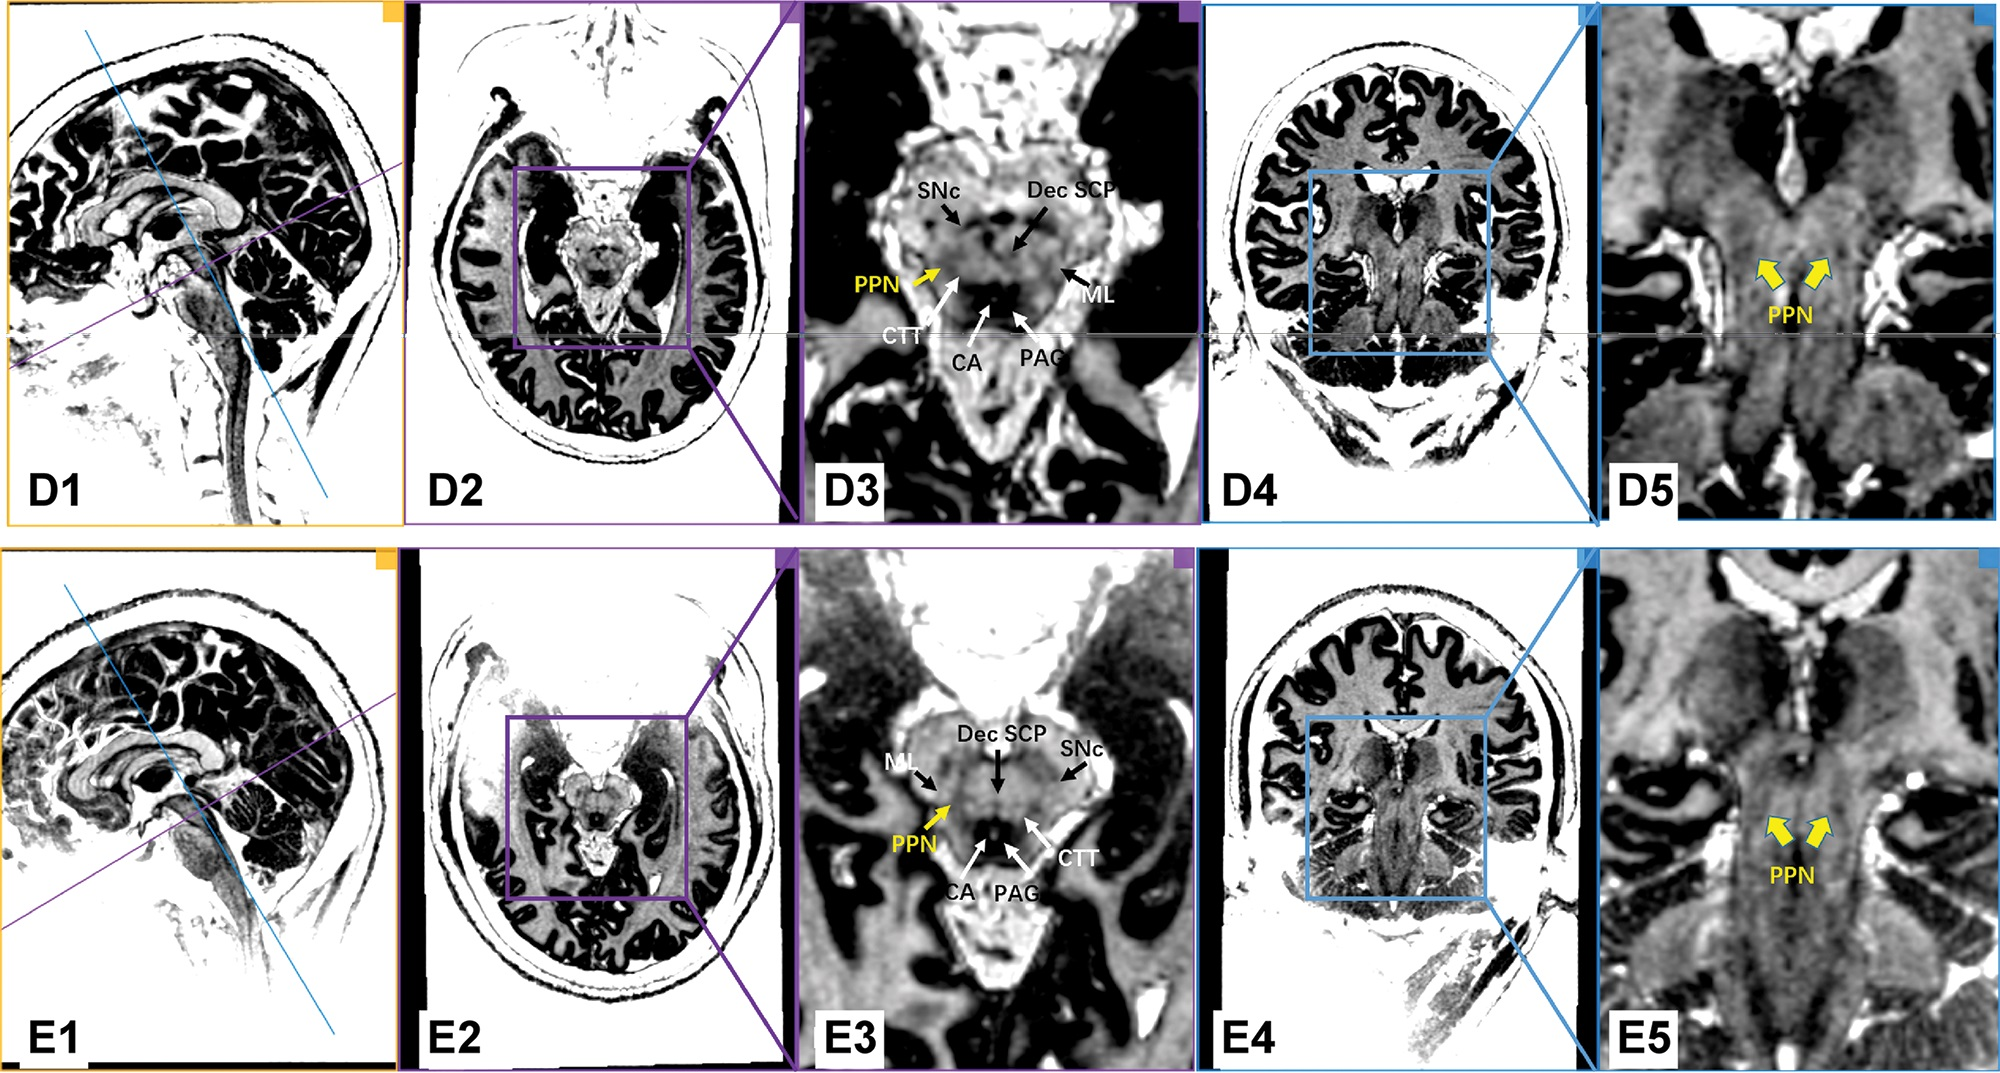 7.0T ultrahigh-field MRI scans using the MP2RAGE sequence in the PD patients (Patients D and E). Every row represents the images of the same PD patient. The first column shows the orthographic views for every patient. The two vertically intersecting lines (blue line and purple line) in the first column represent the two planes in other columns (the plane of columns 2/3 with purple border and the plane of columns 4/5 with blue border). The PPN was delineated as a region of intermediate signal intensity when compared to the surrounding structure, such as the hypo-intensity of the PAG and the hyperintensity of the neighboring triad of white matter tracts. Dec SCP: decussating superior cerebellar peduncle, ML: medial lemniscus, CTT: central tegmental tract, SNc: substantia nigra pars compacta, CA: cerebral aqueduct, PAG: periaqueductal gray, PPN: pedunculopontine nucleus.